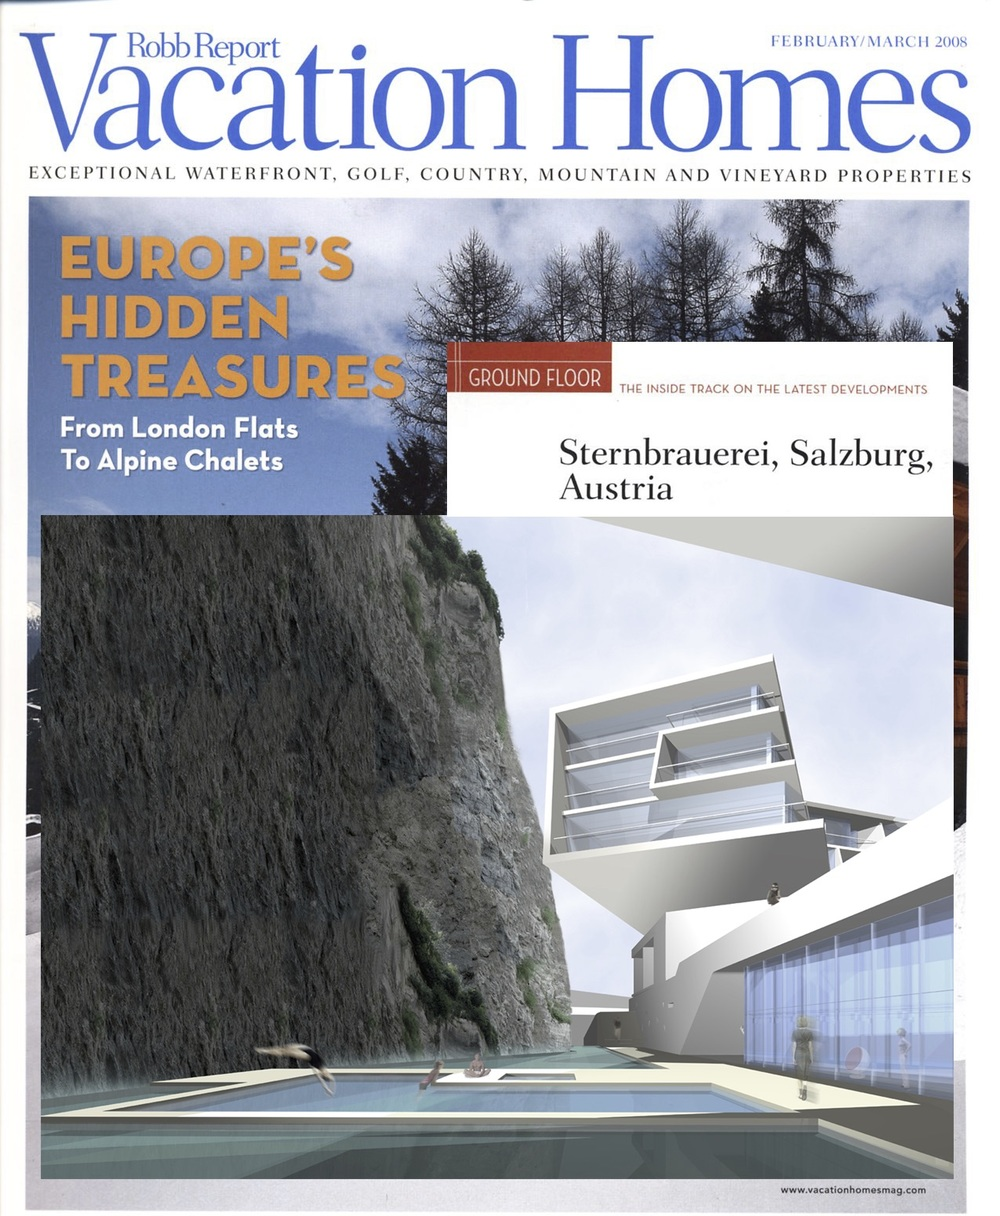 02.08 ROBB REPORT VACATION HOMES (SALZBURG)